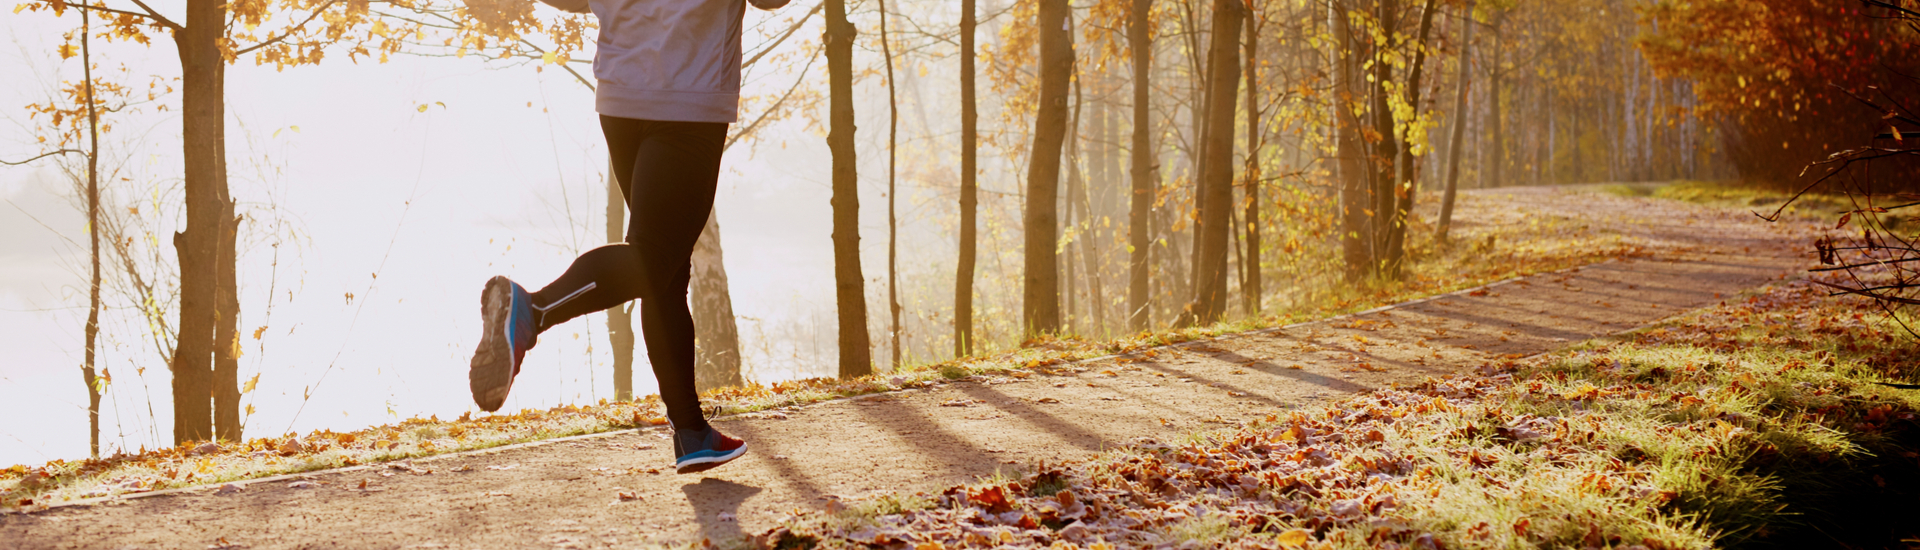 Top 5 Outdoor Places to Exercise in Uxbridge